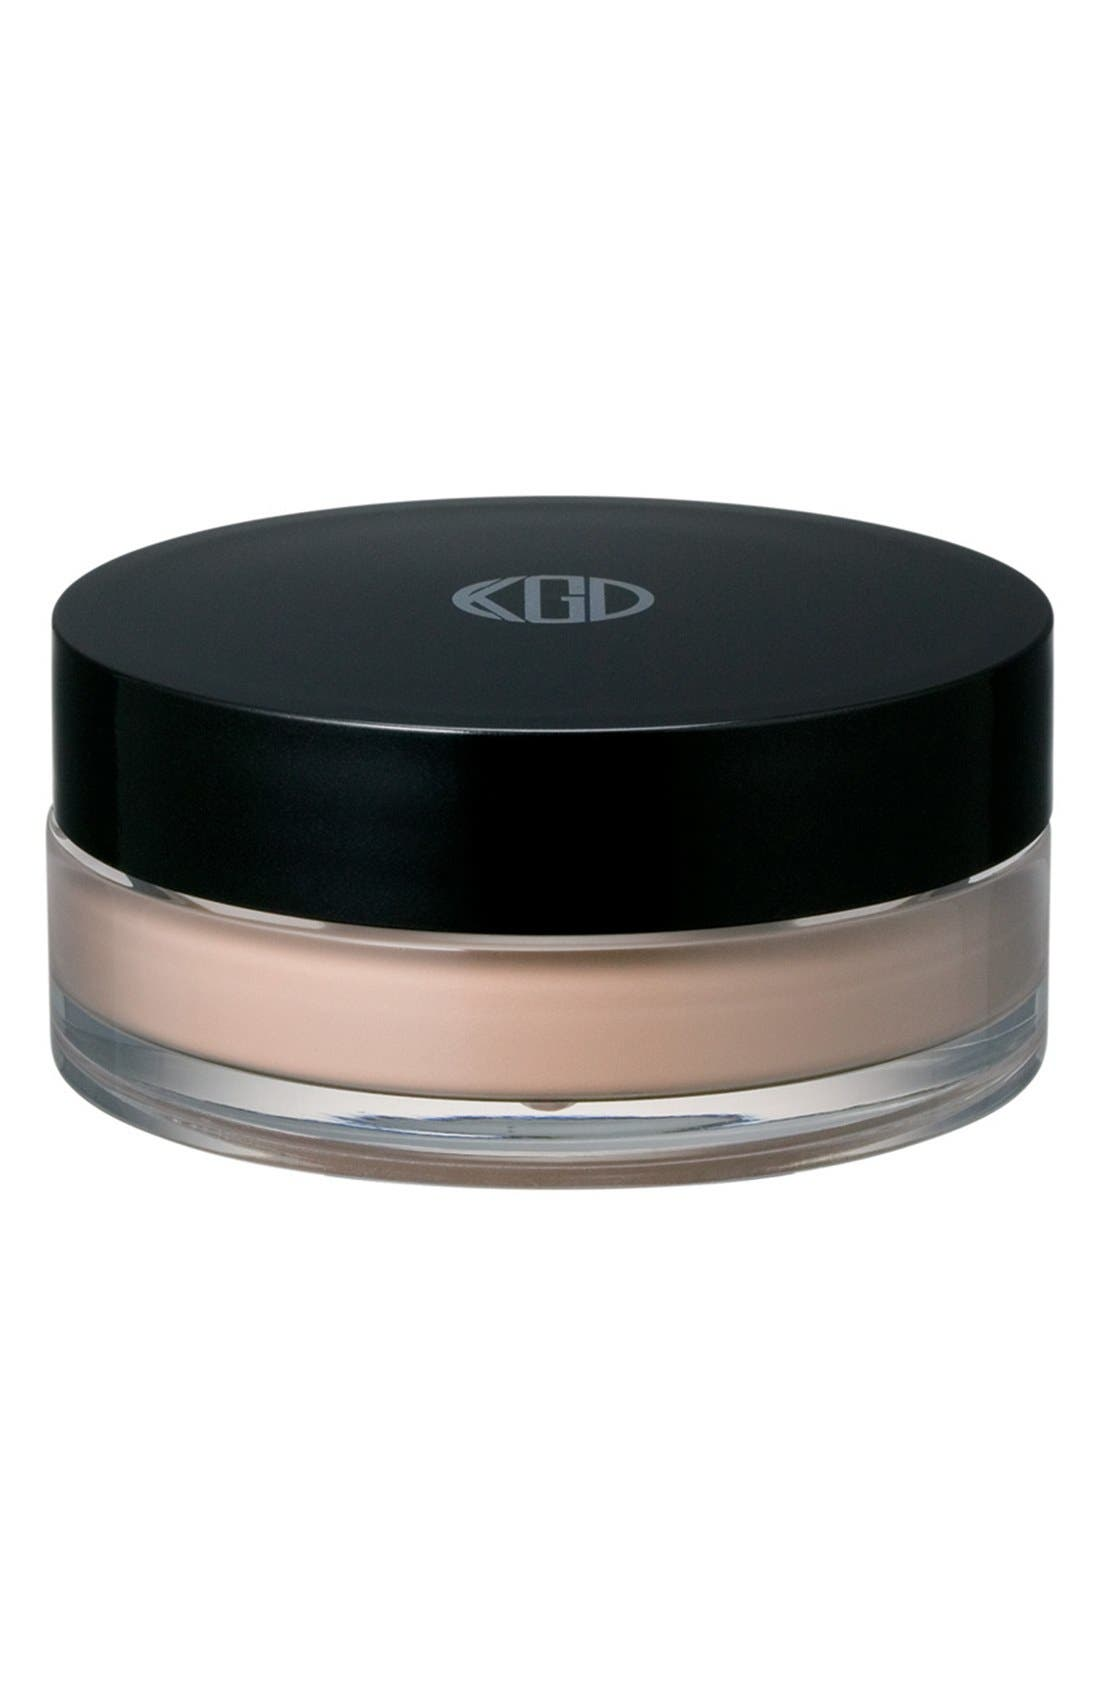 Koh Gen Do 'Maifanshi' Natural Lighting Powder